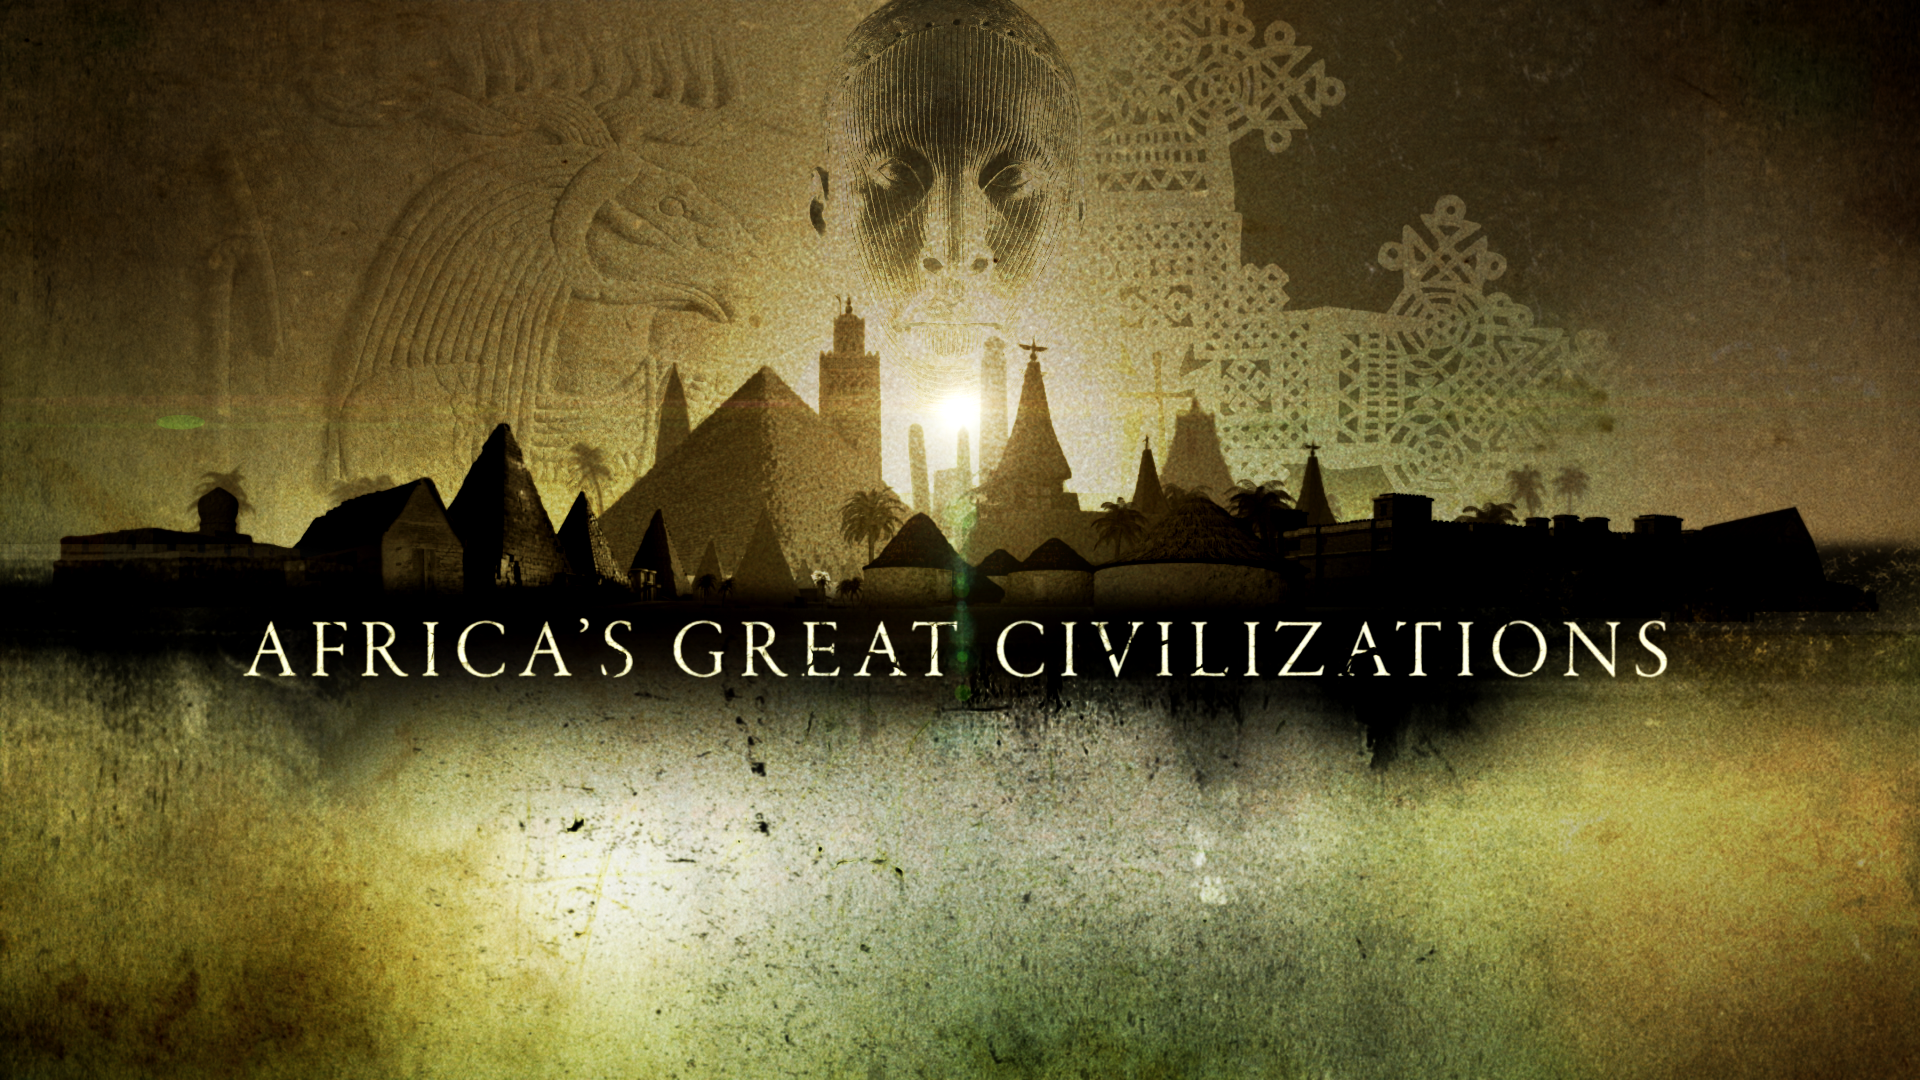 Africa's Great Civilizations-Origins, The Cross and the Crecent